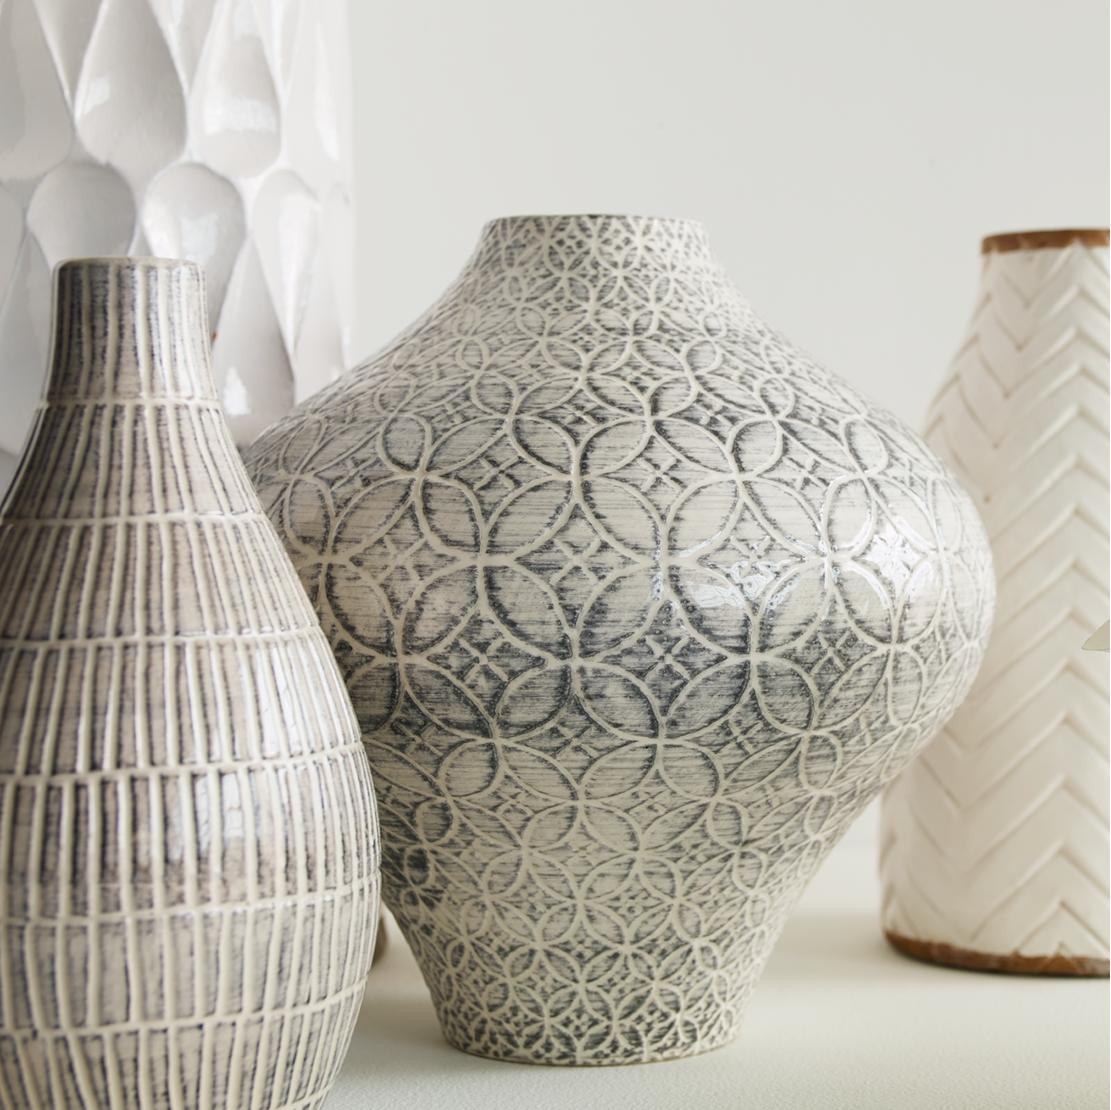 Floor Decor More: Home Decor Accessories For A Stylish Home